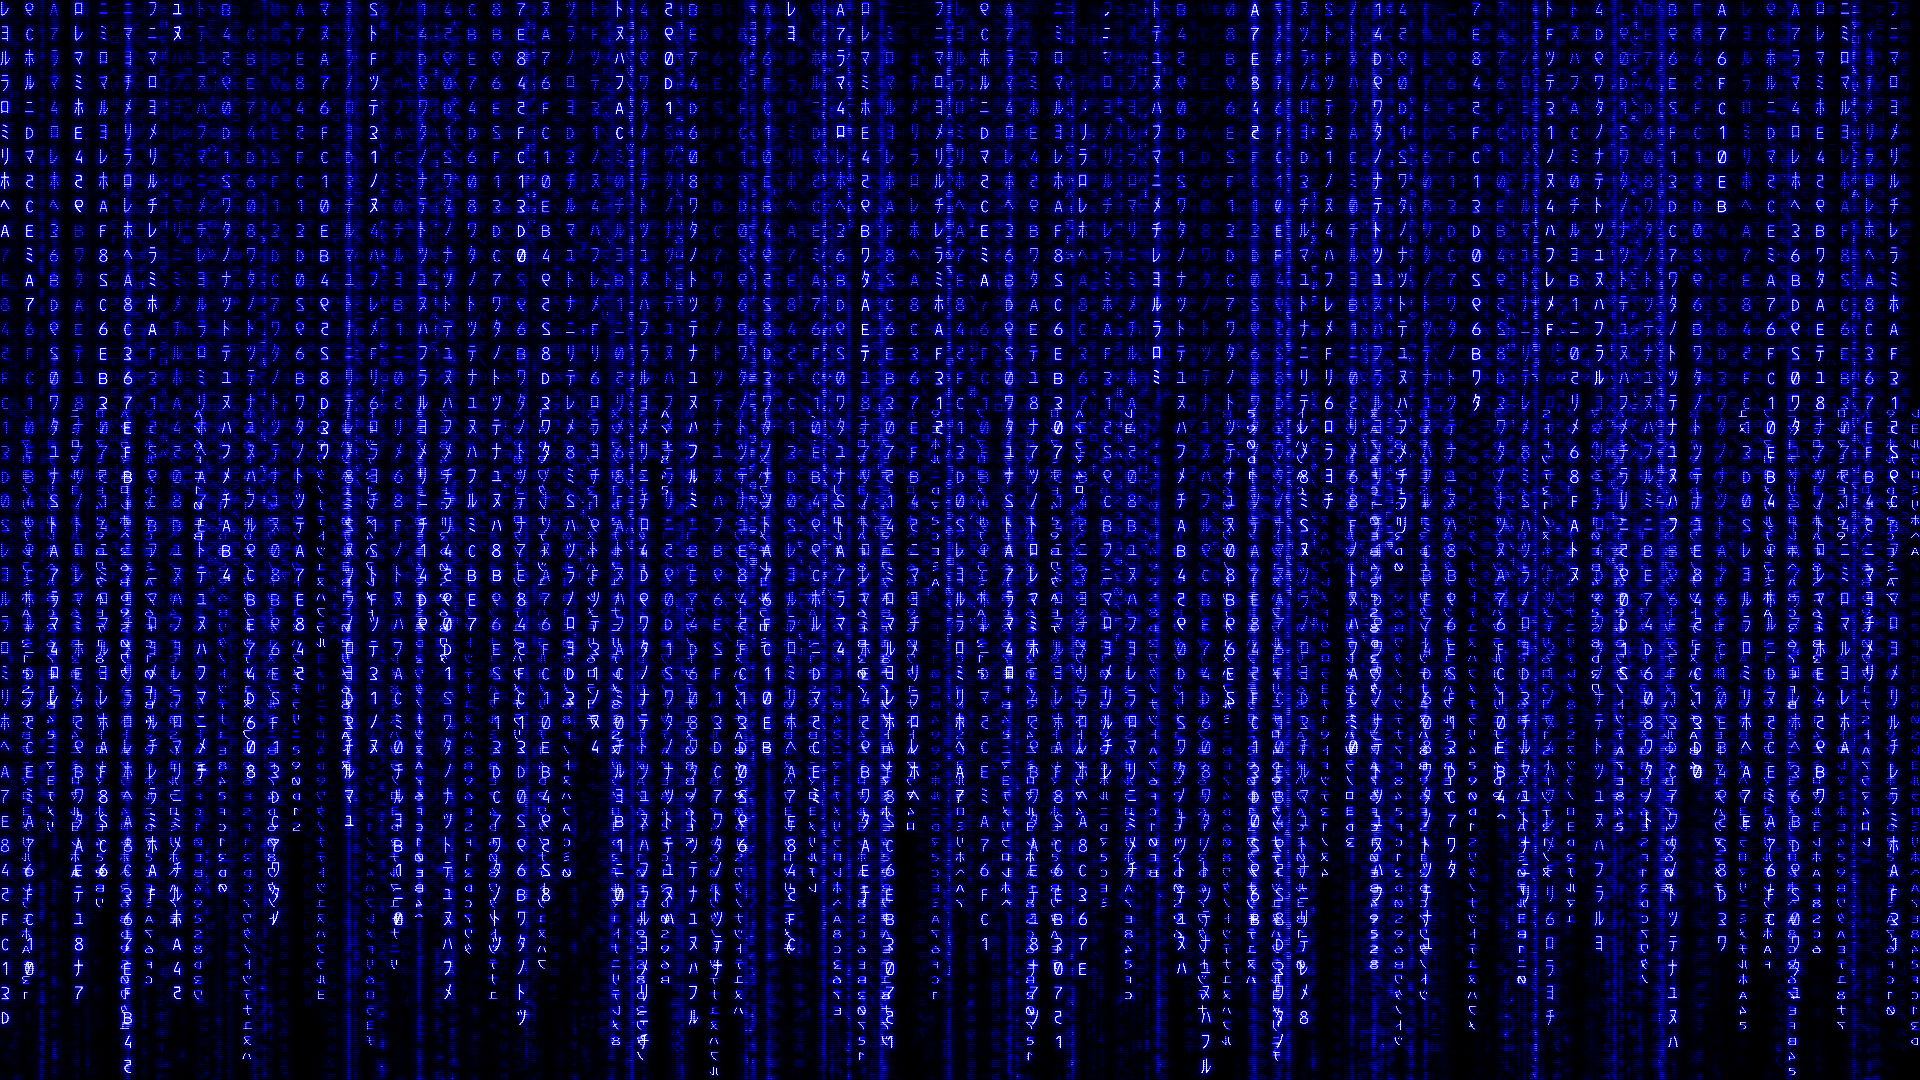 Download Free Animated Matrix Background.